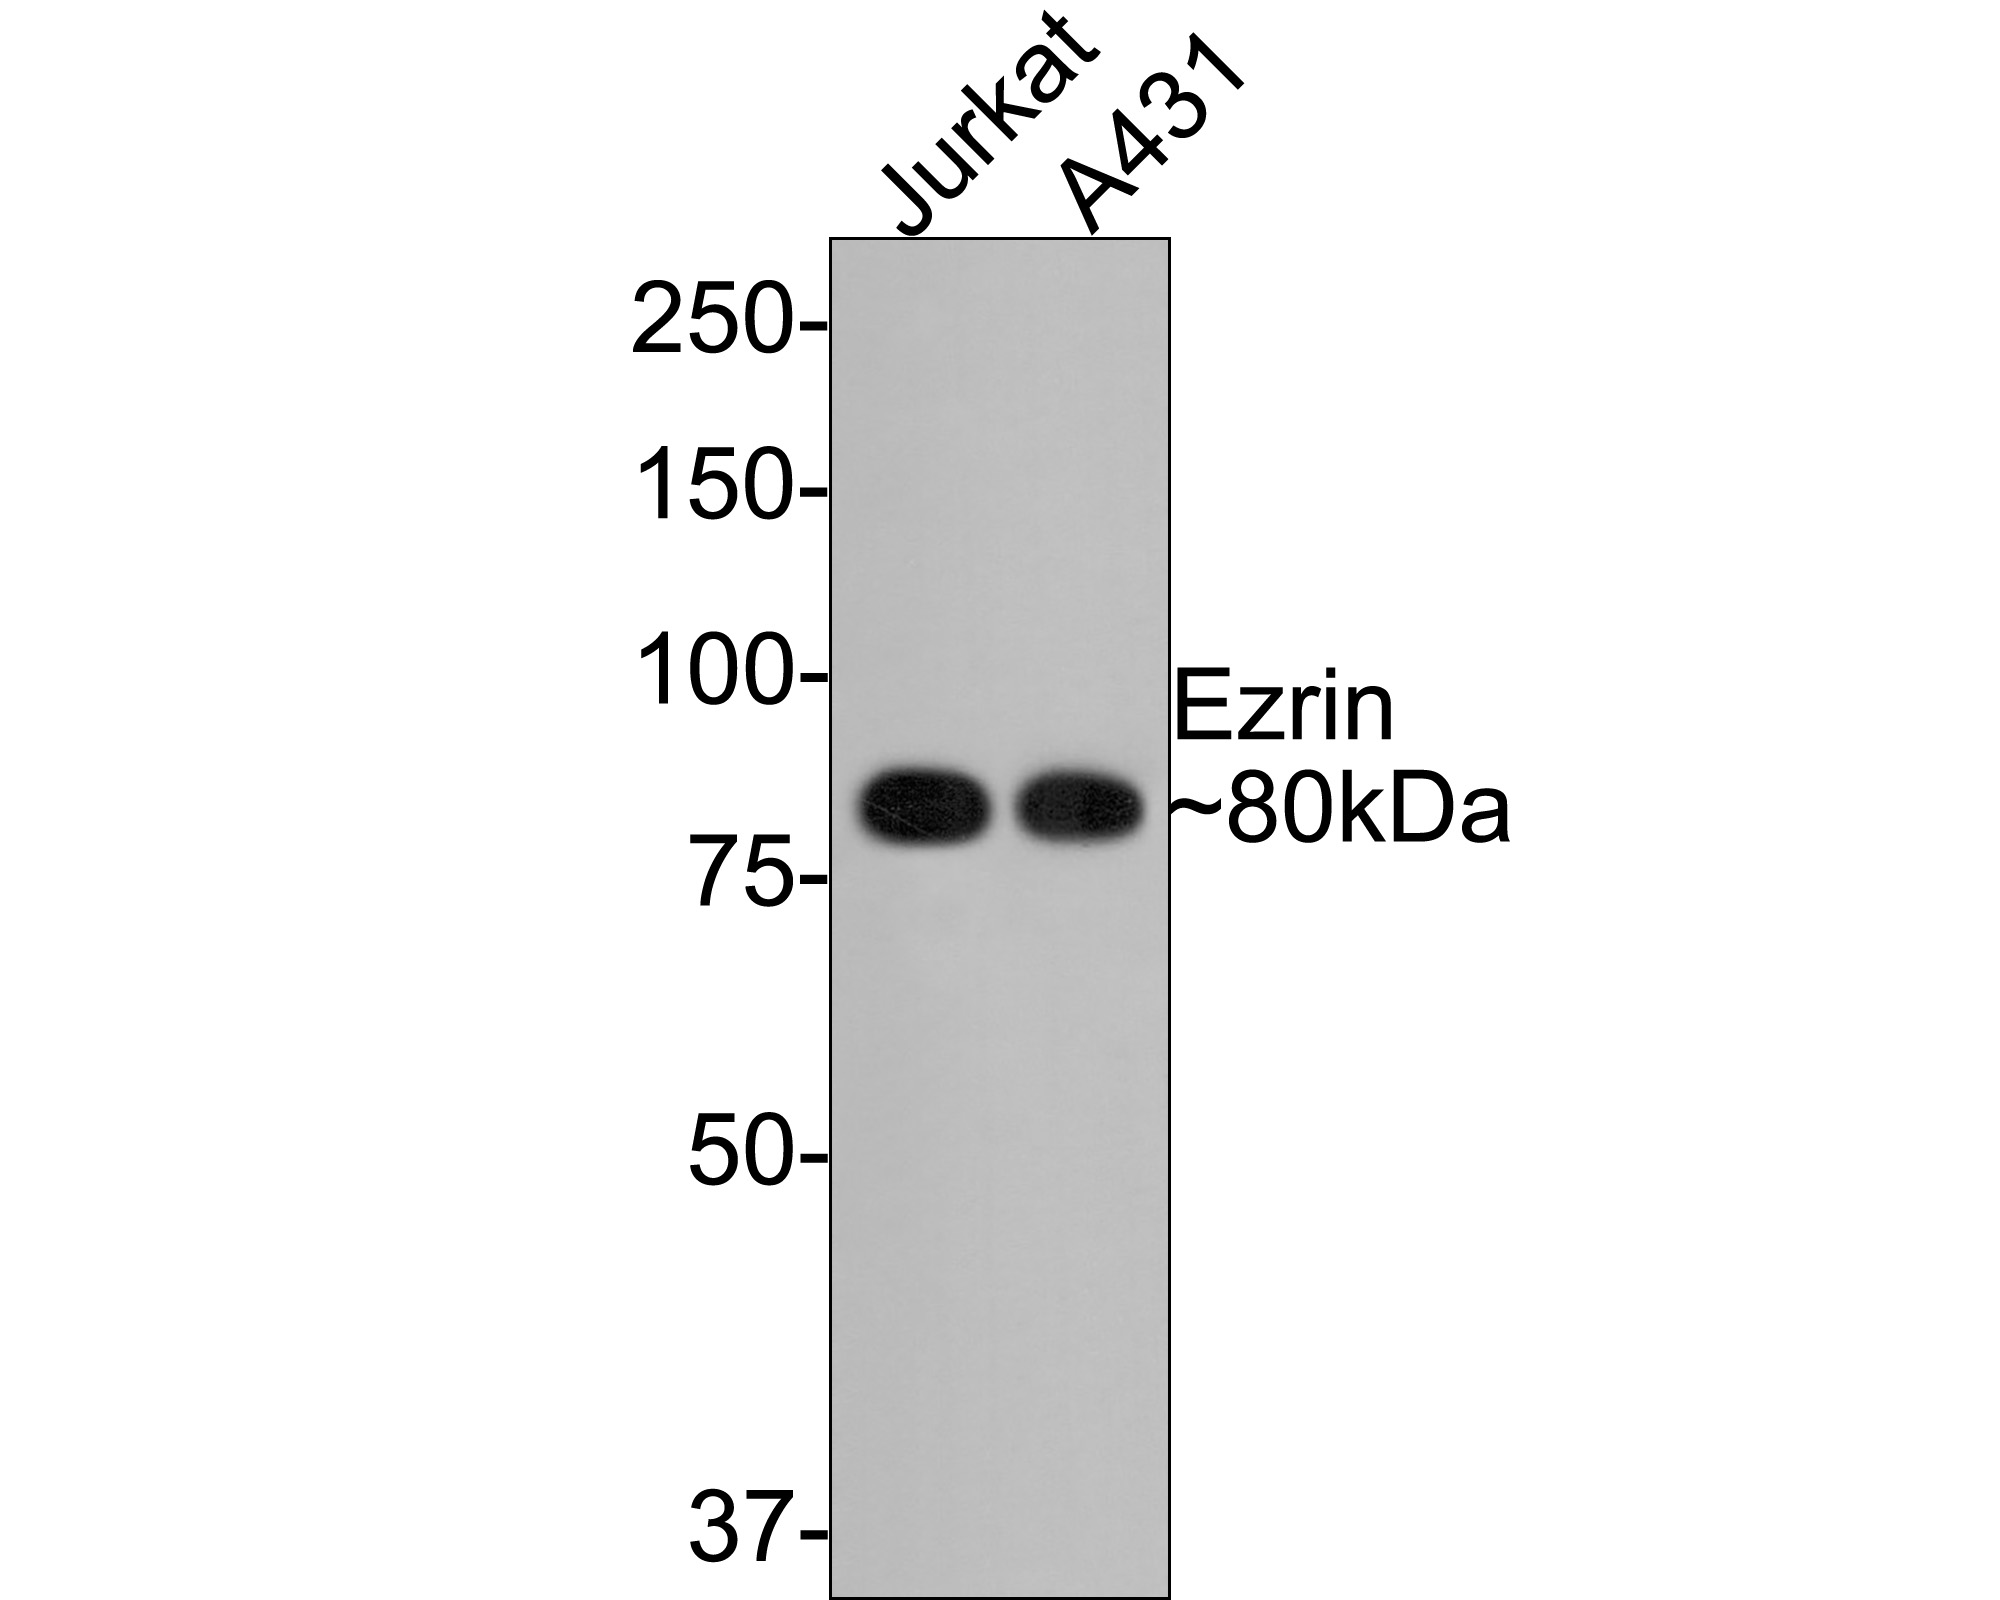 Western blot analysis of Ezrin on different cell lysates using anti-Ezrin antibody at 1/1,000 dilution.<br /> Positive control:<br /> Lane 1: Hela<br /> Lane 2: Jurkat<br /> Lane 3: A431